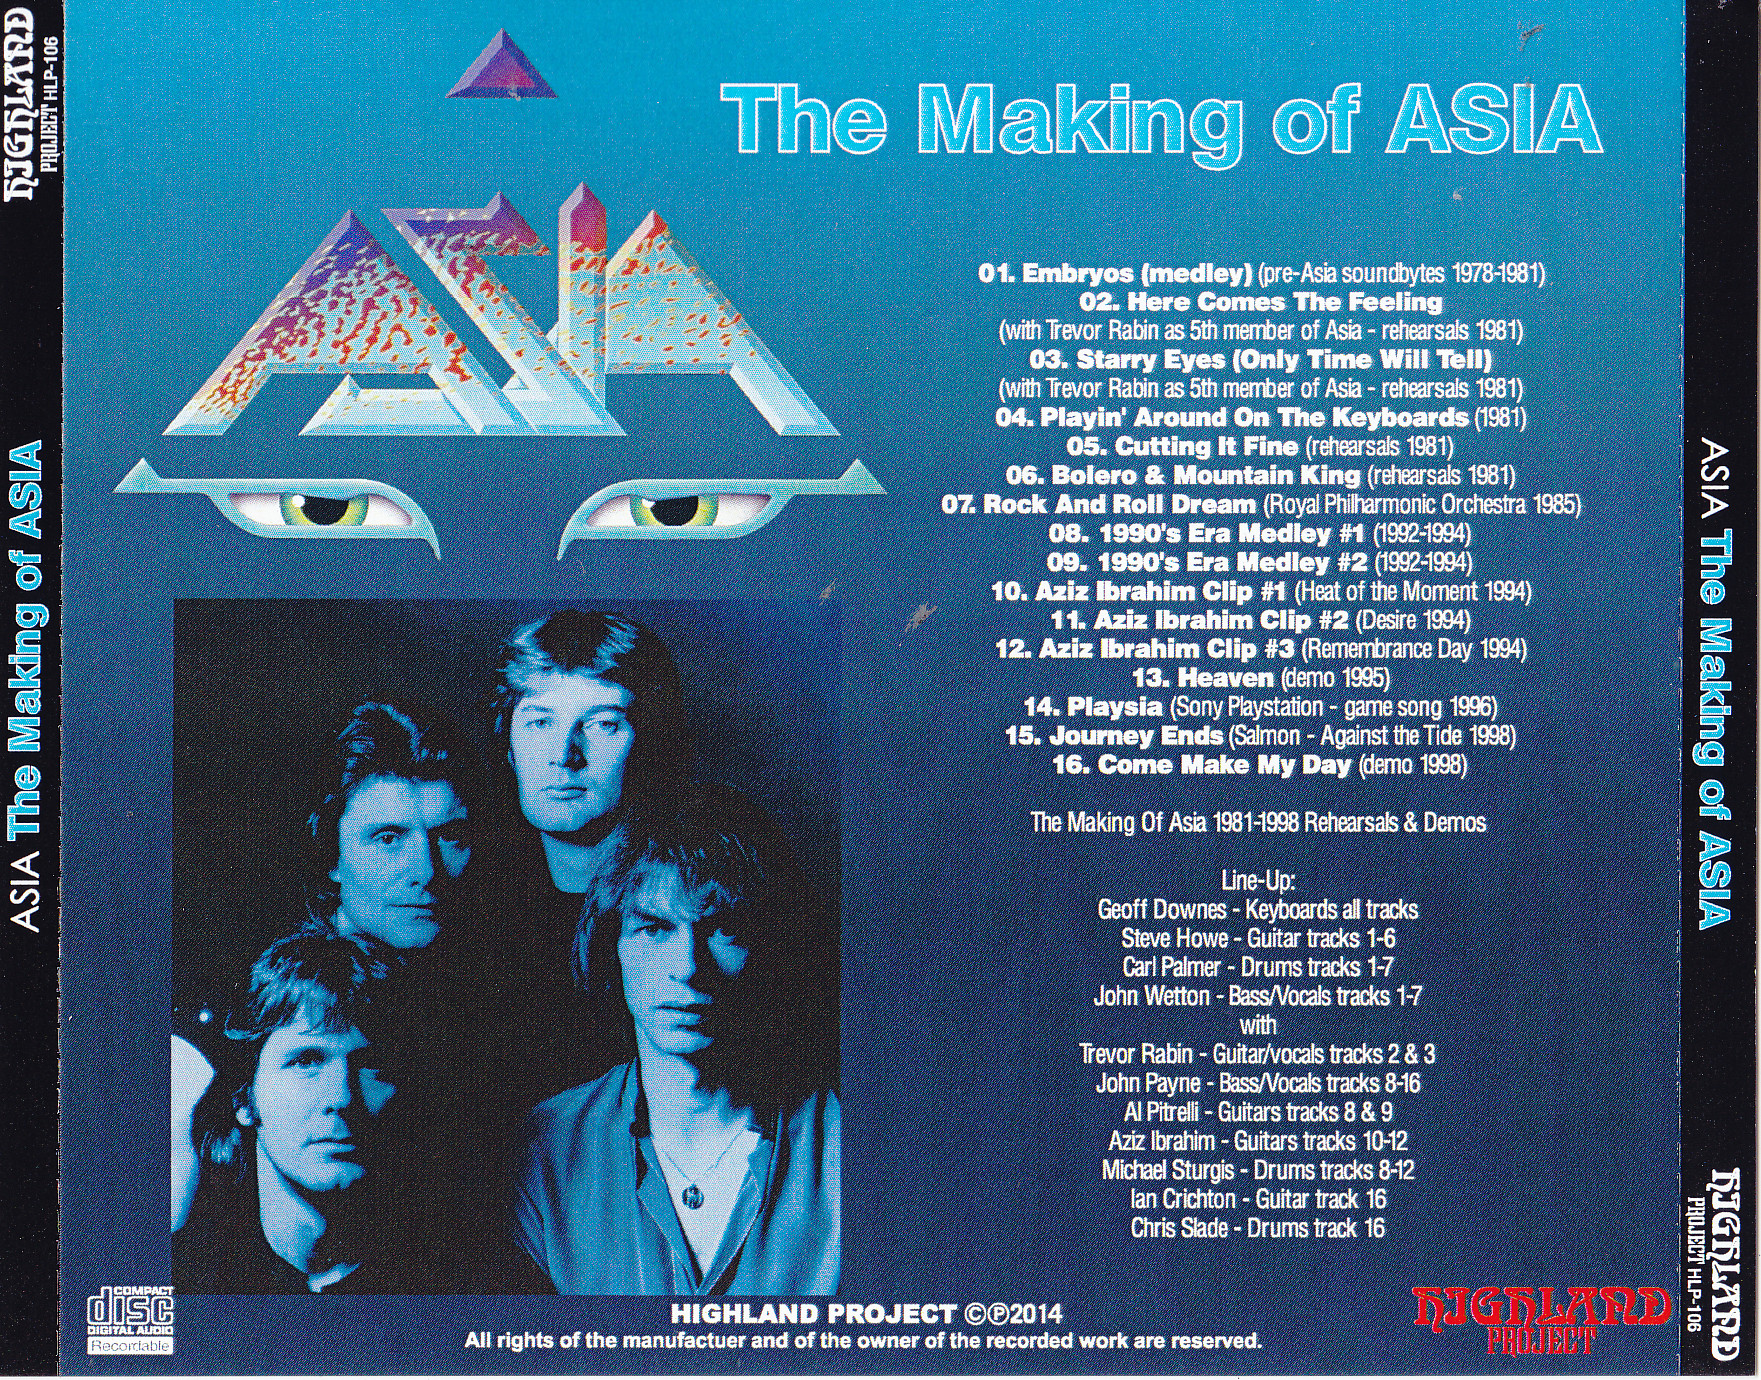 Asia1981-1998TheMakingOfAsiaCompilation.jpg